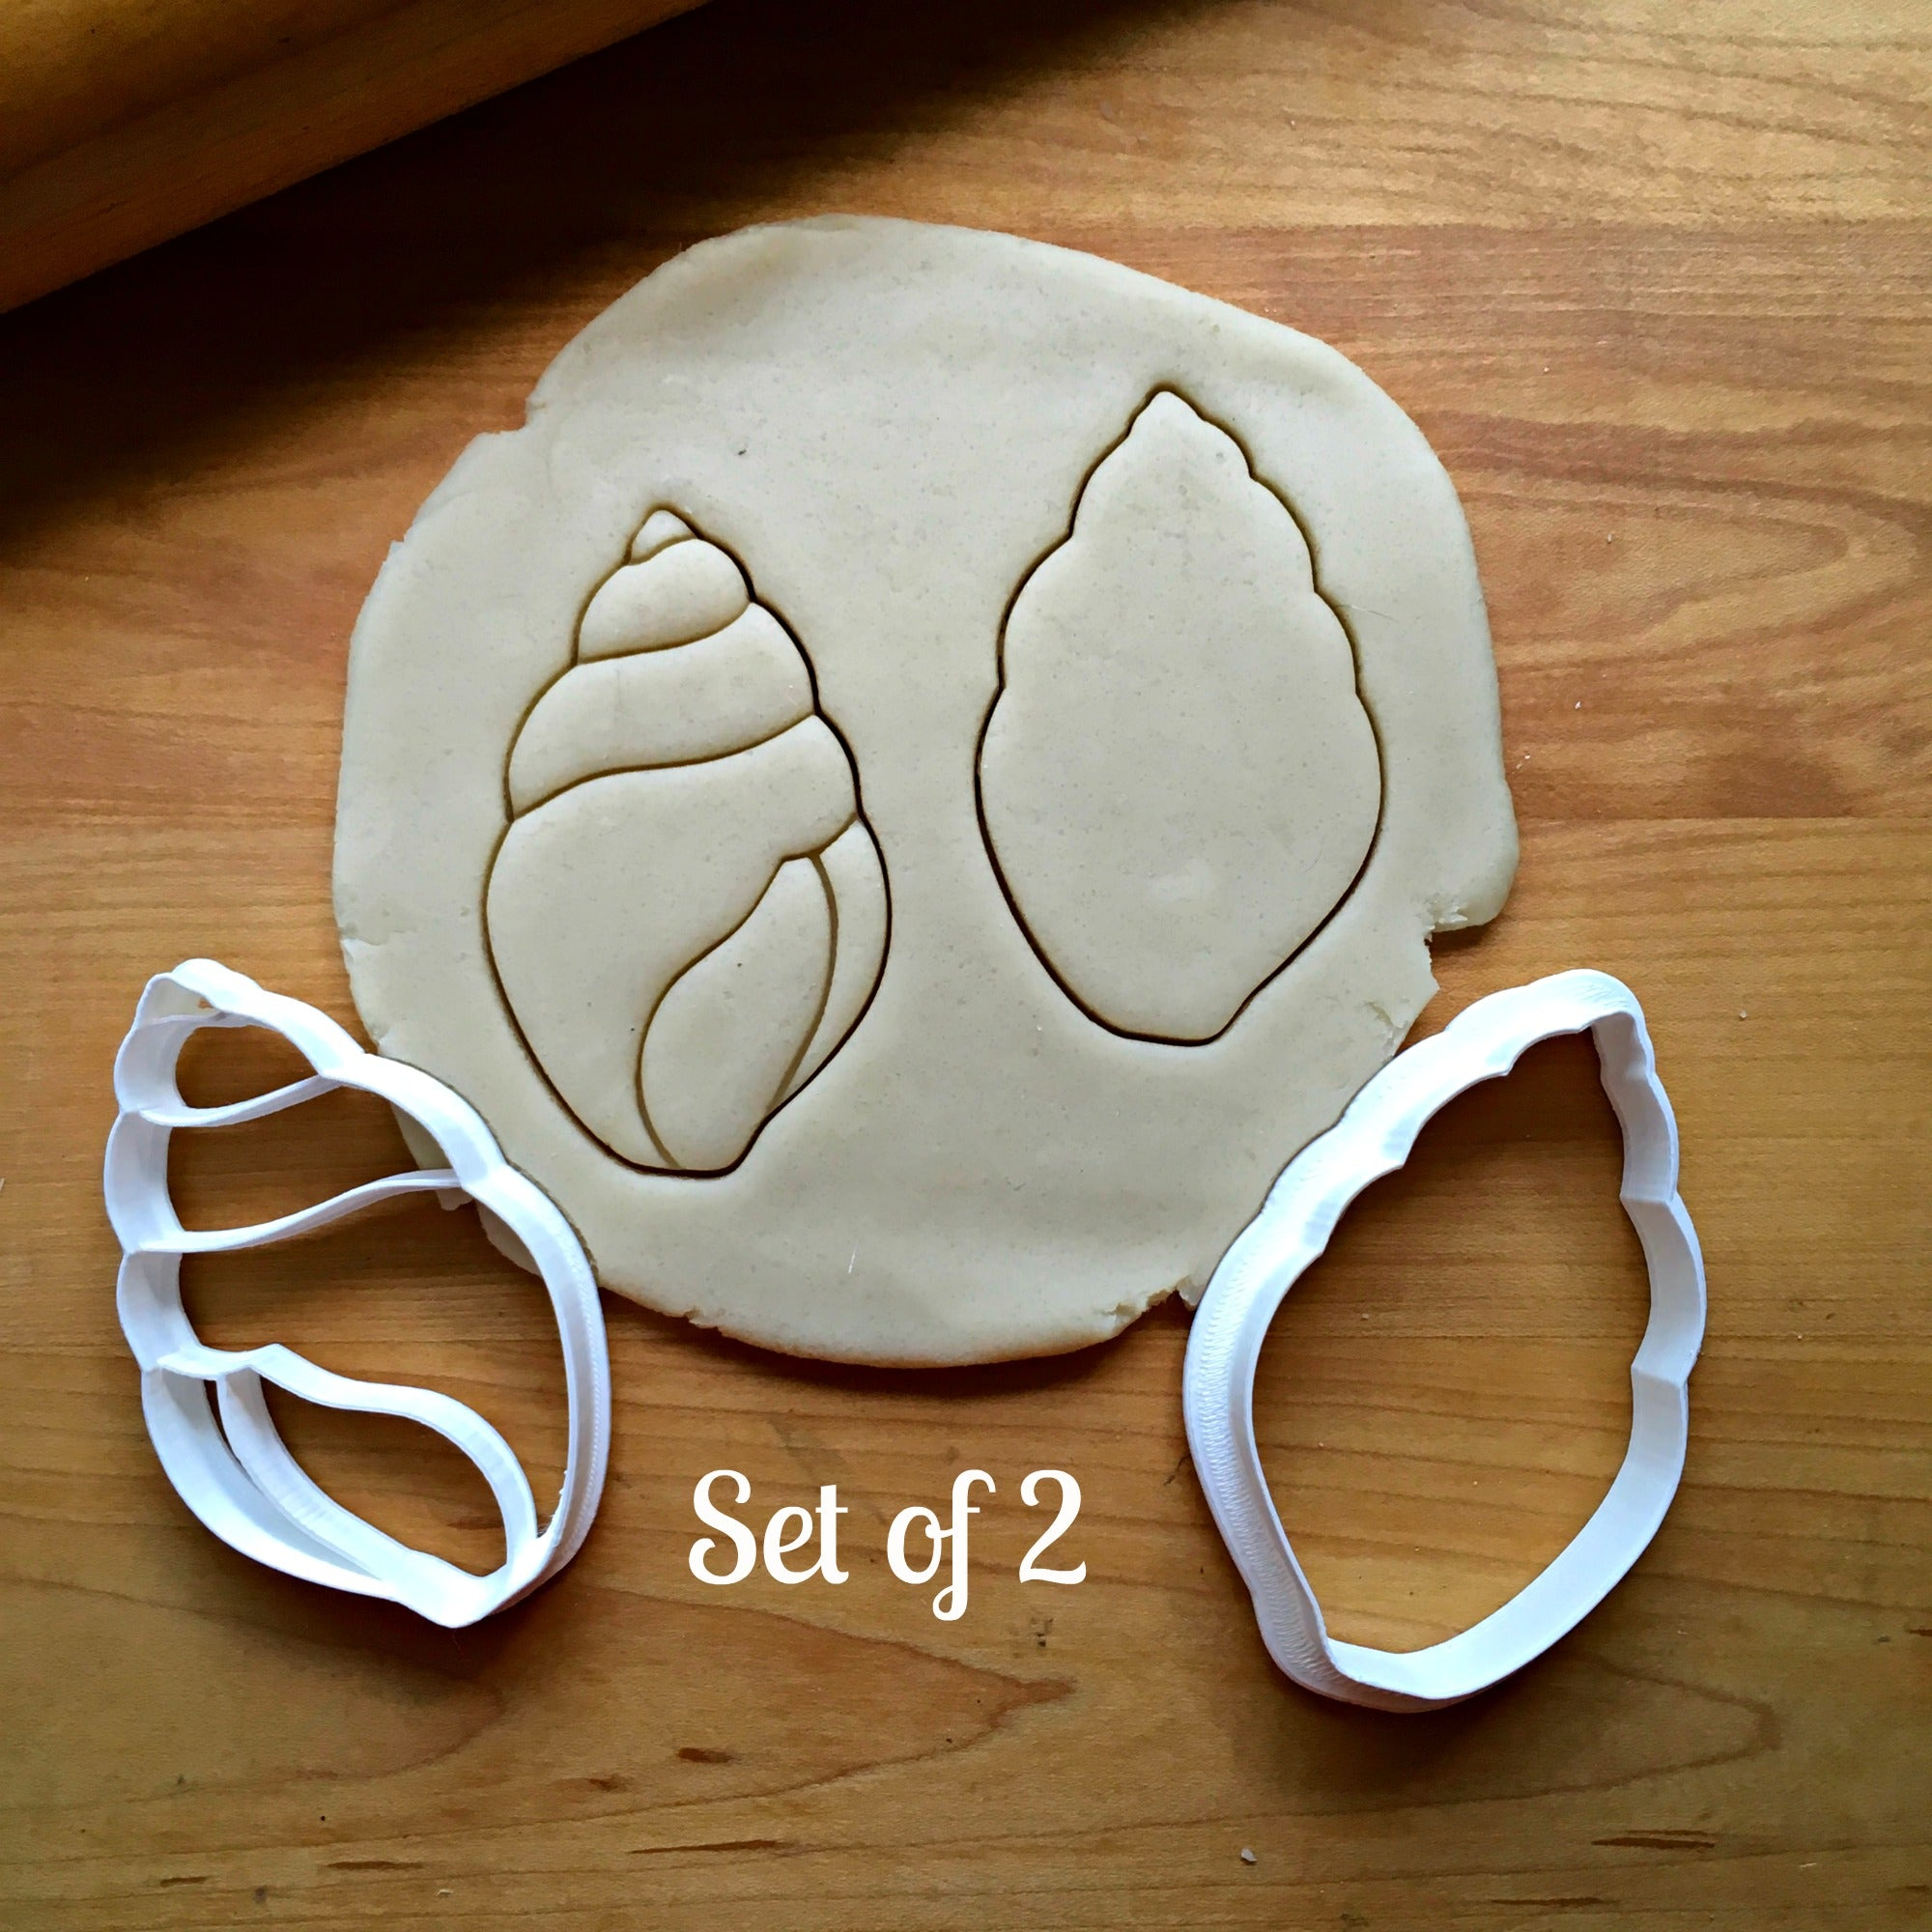 Set of 2 Conch Seashell Cookie Cutters/Dishwasher Safe